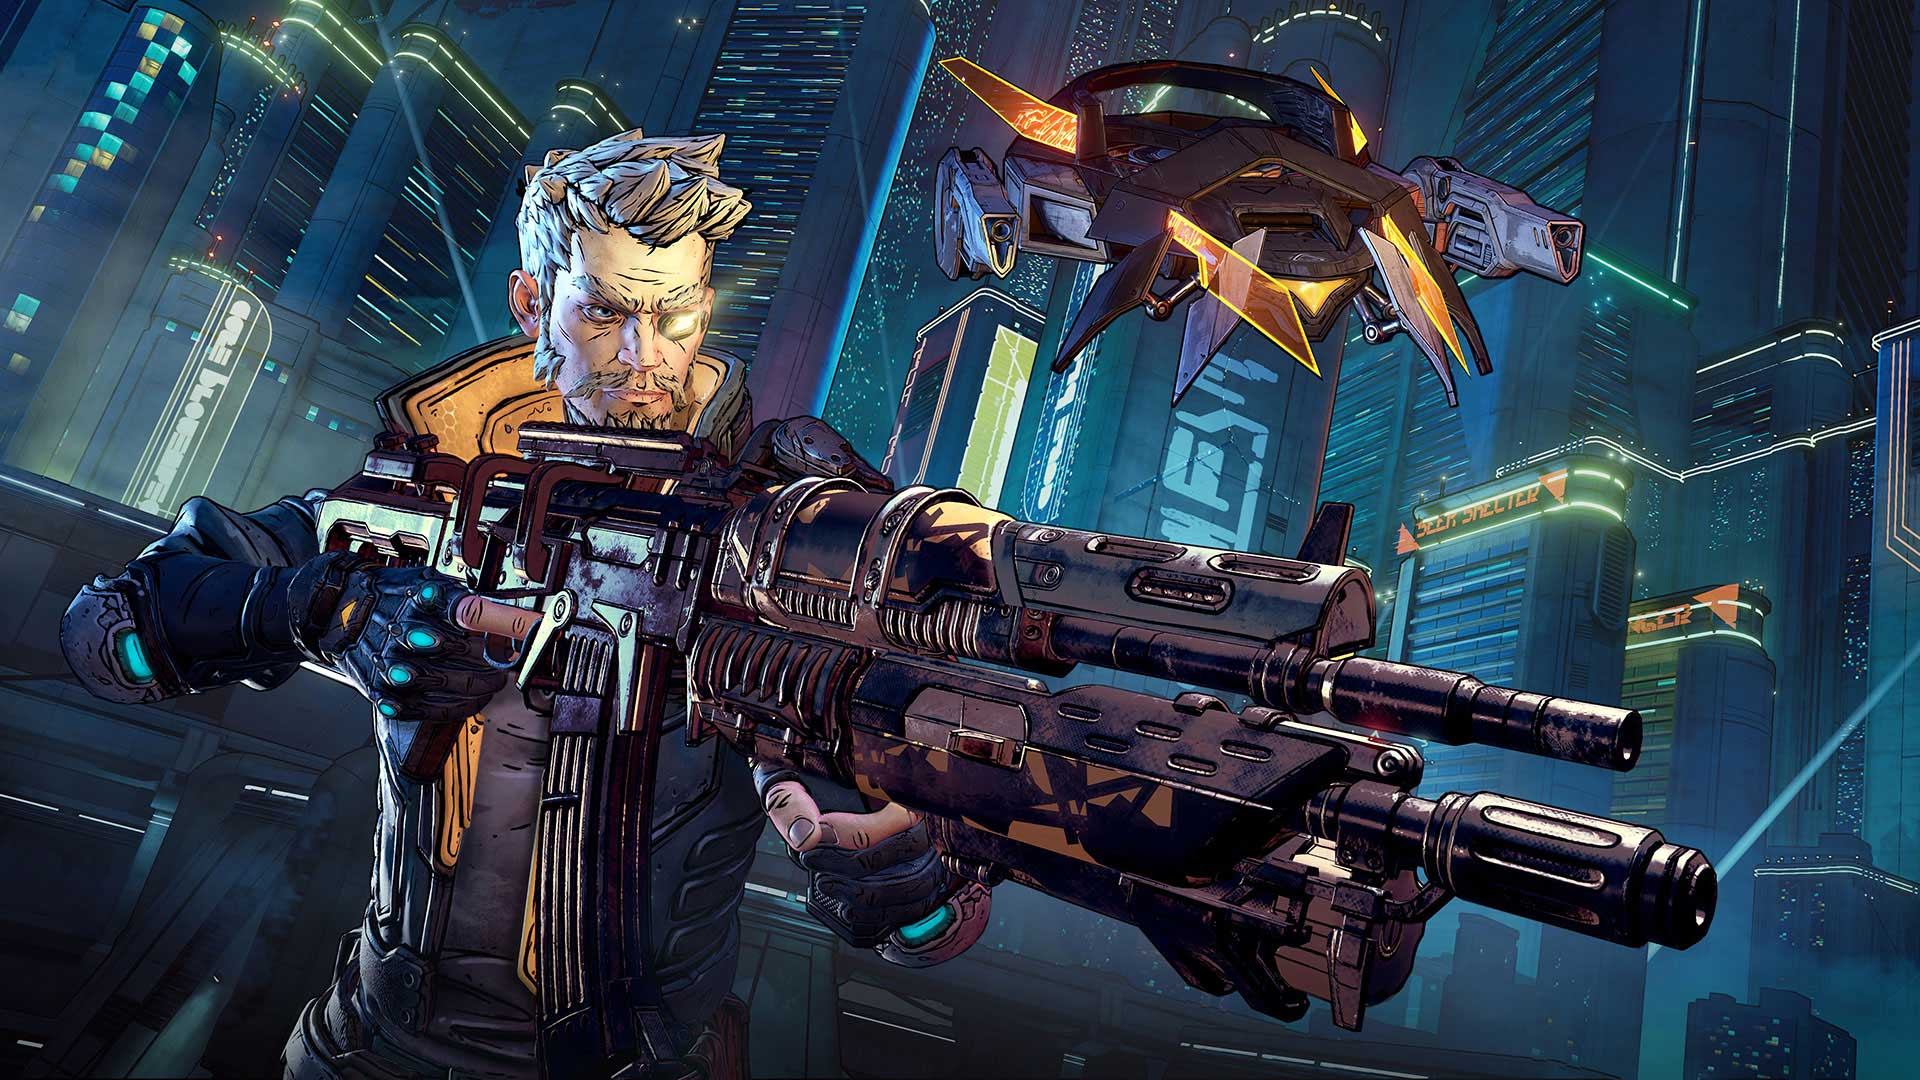 Borderlands 3 character guide: Zane - The Operative